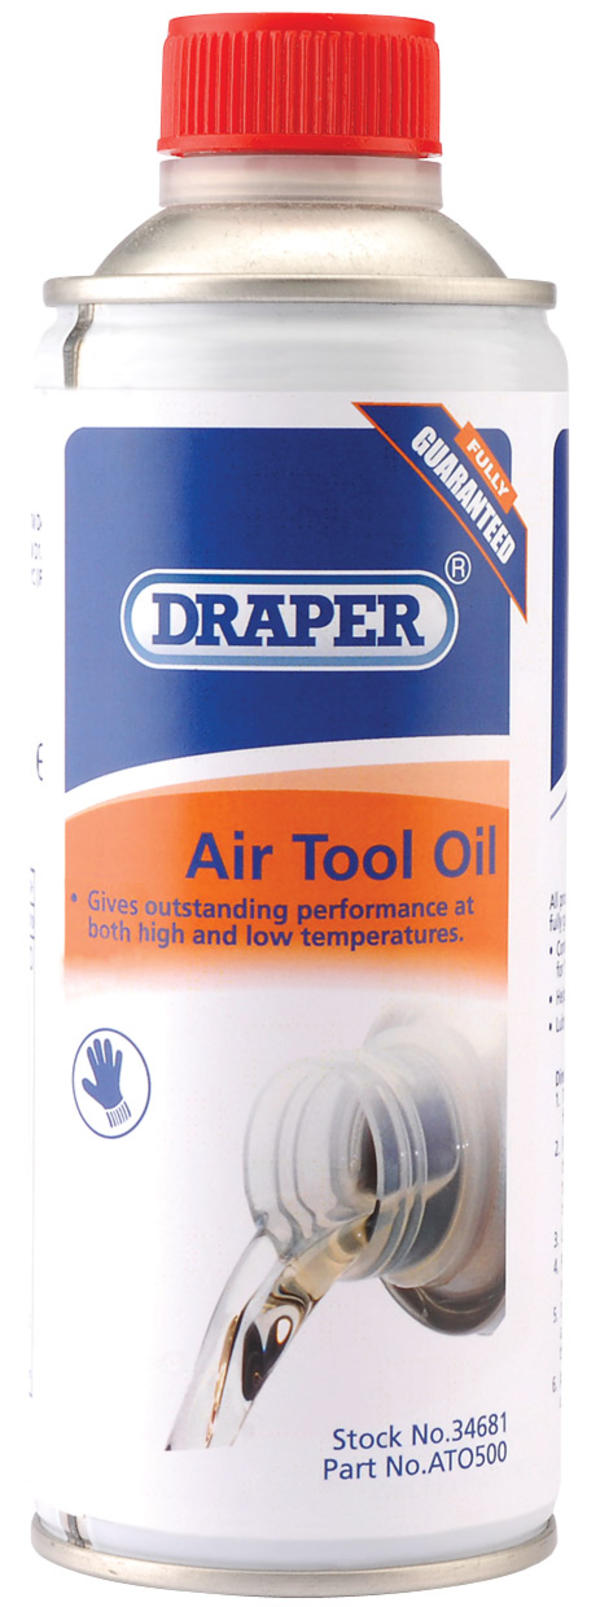 Draper 34681 ATO500 500Ml Air Tool Oil Thumbnail 1